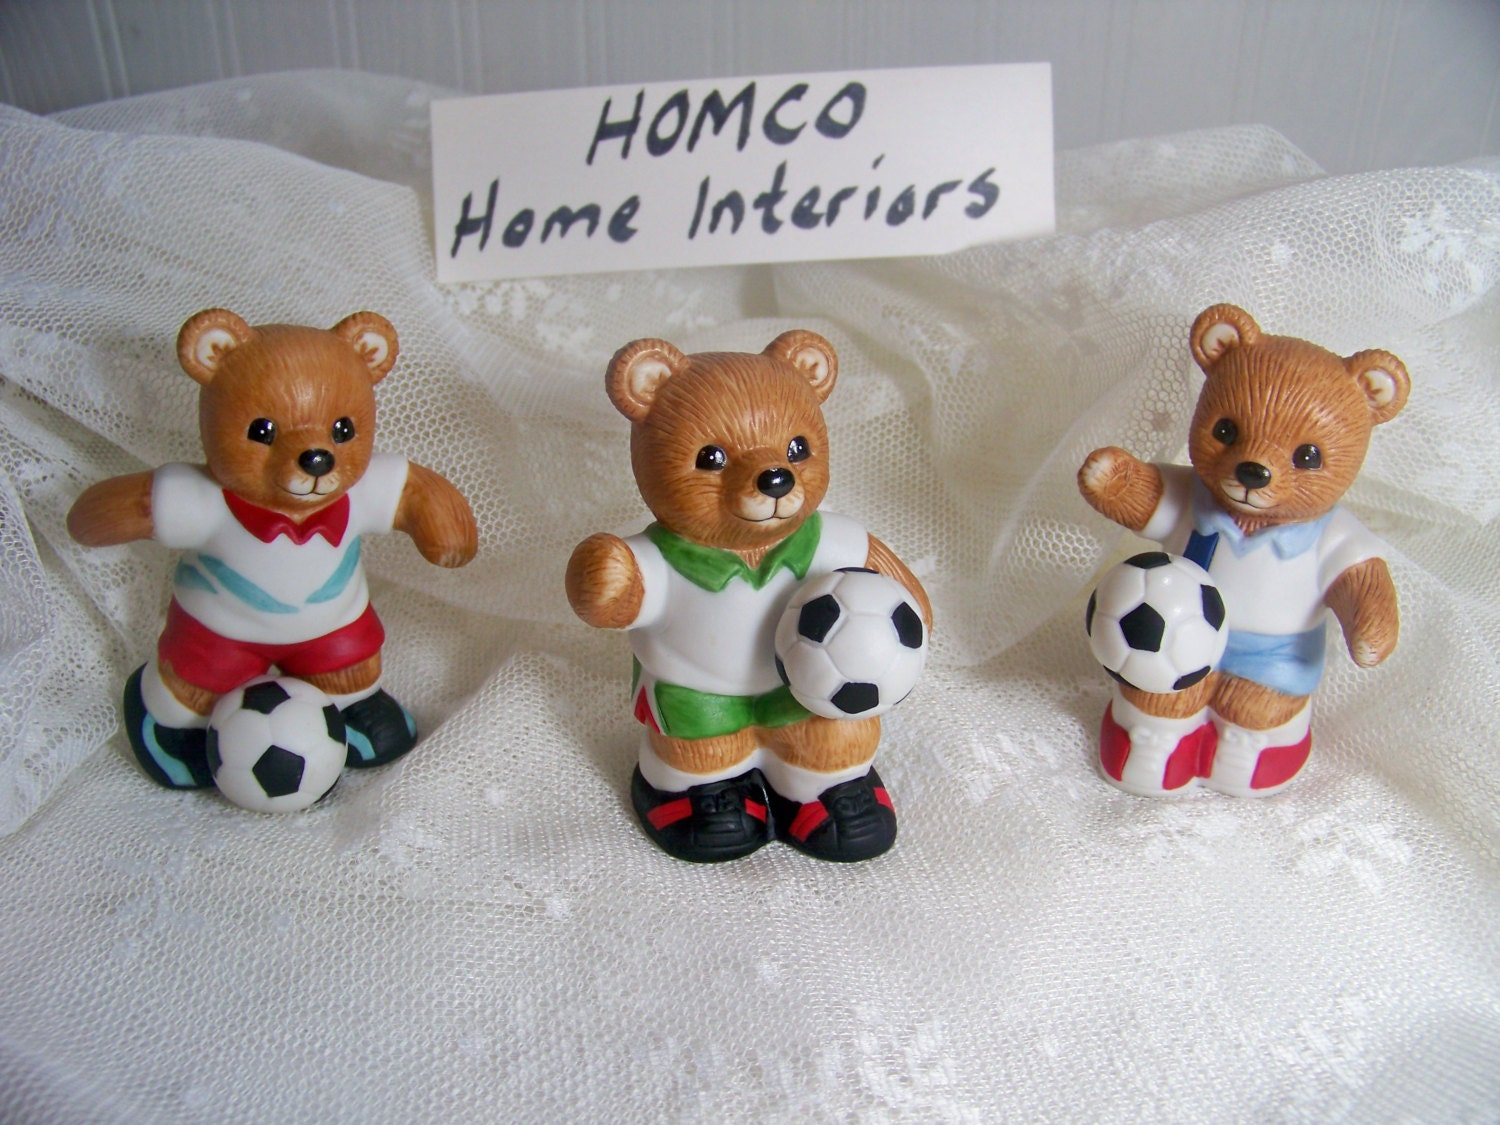 home interior bears home interiors bears soccer bears homco 12179